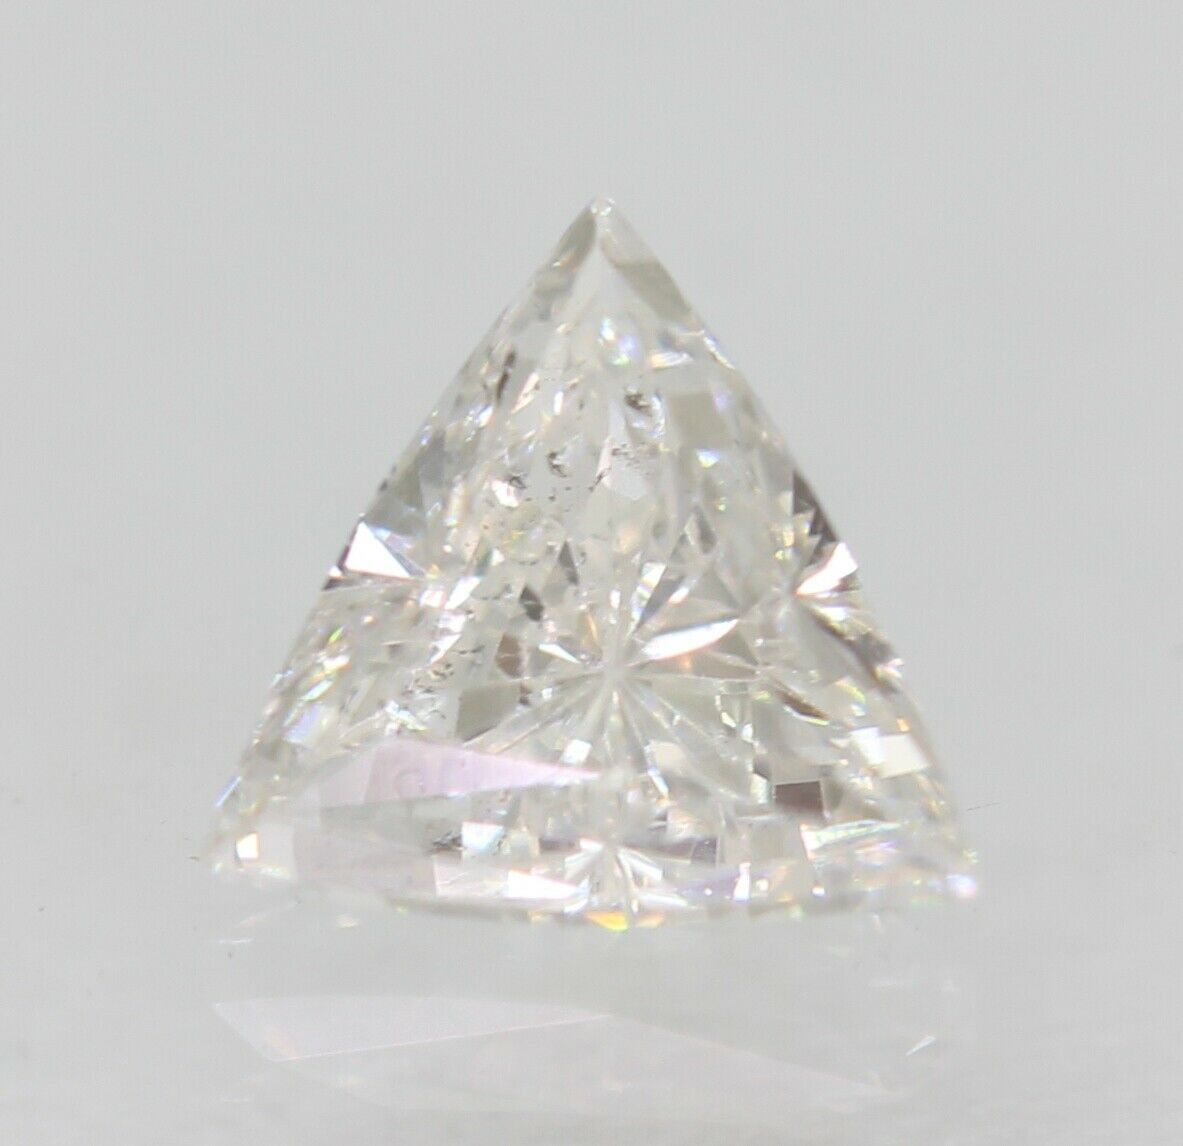 a 9 - 0.28 Carat D Colour SI2 Triangle Natural Loose Diamond For Jewellery 4.55X4.44mm